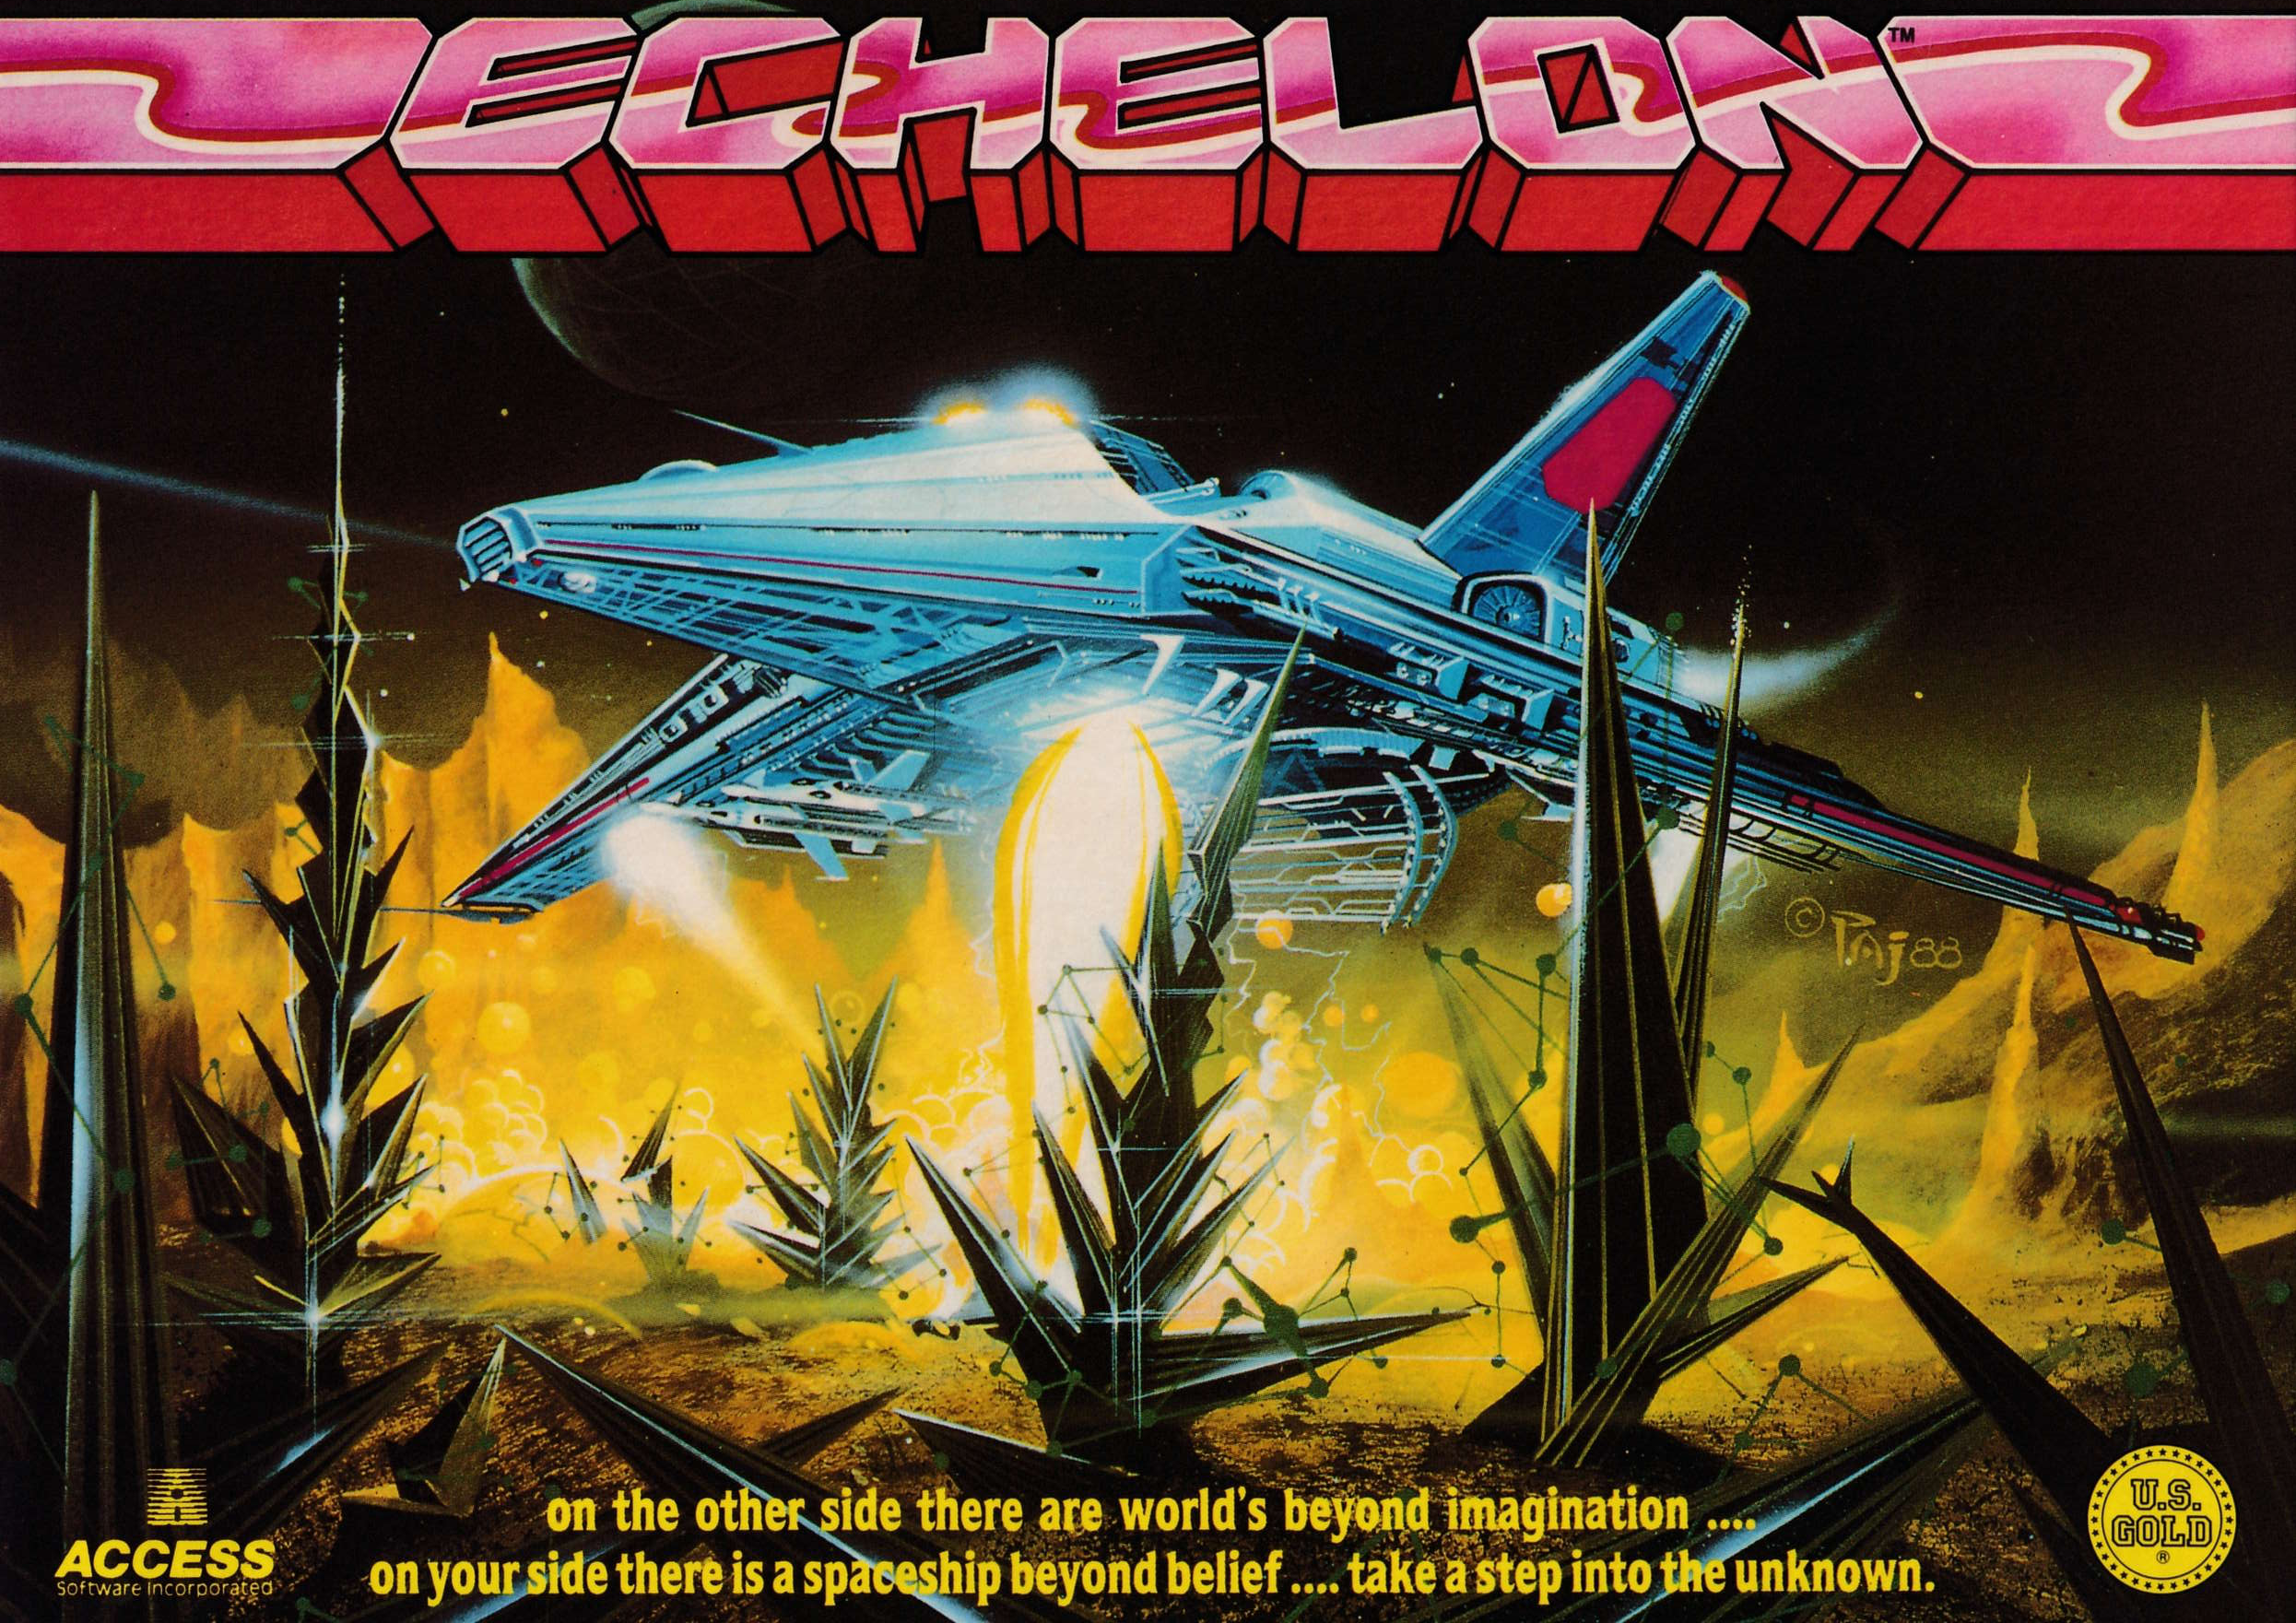 cover of the Amstrad CPC game Echelon  by GameBase CPC